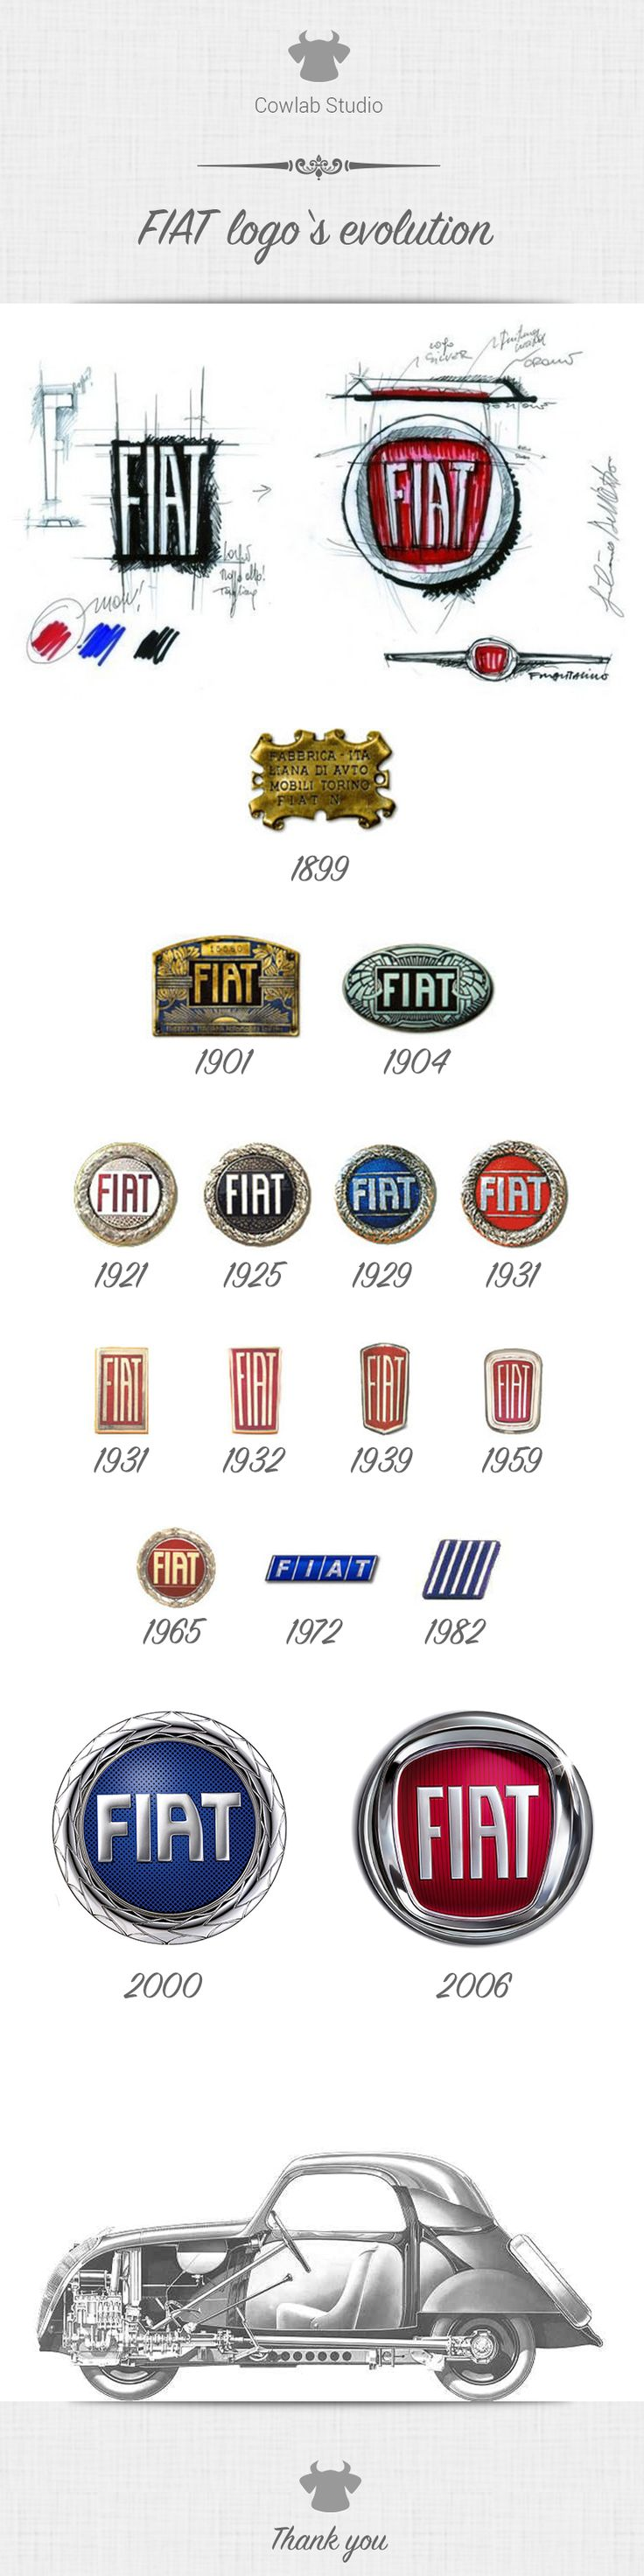 Fiat = Fabbrica Italiana Automobili Torino Italian brand and design from july-11-1899